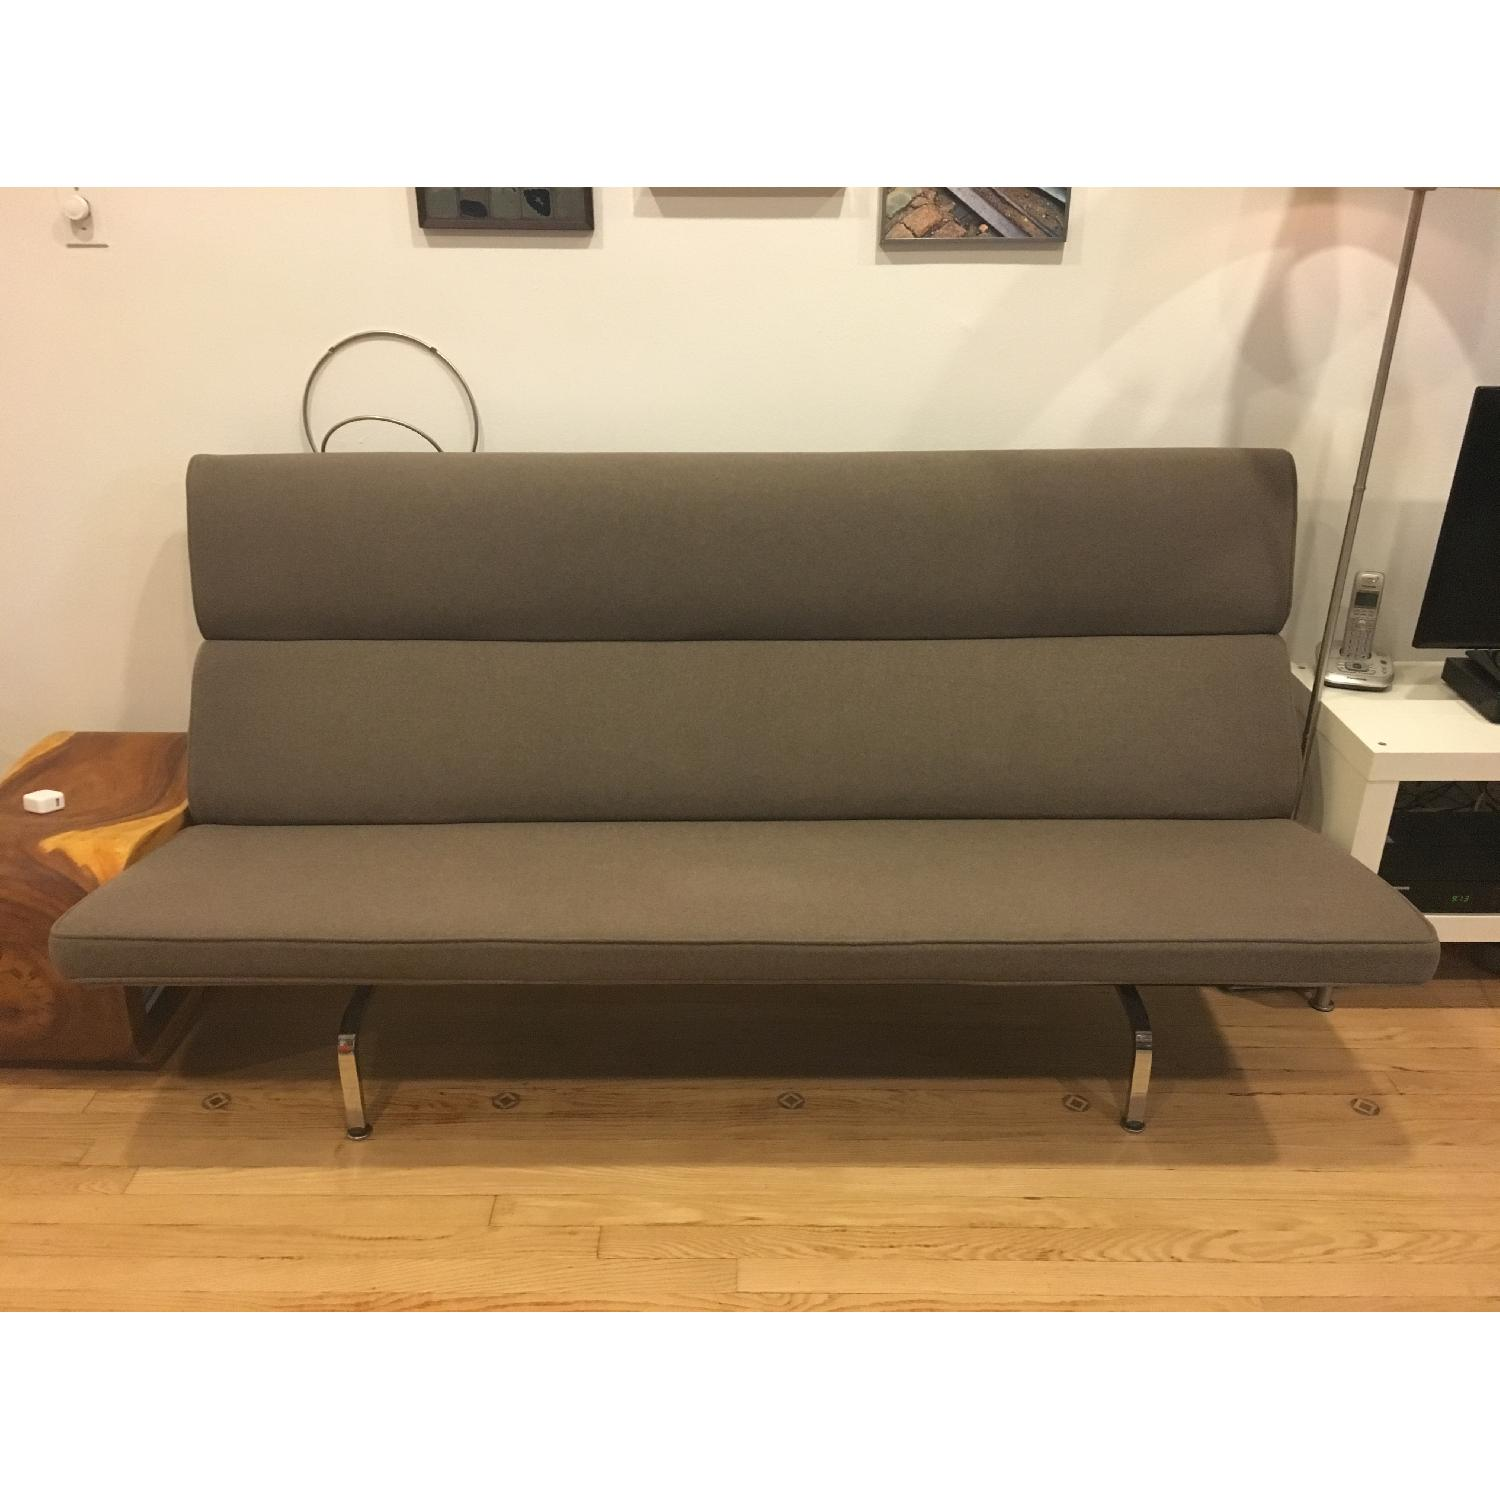 Eames Compact Sofa in Smoke - image-1